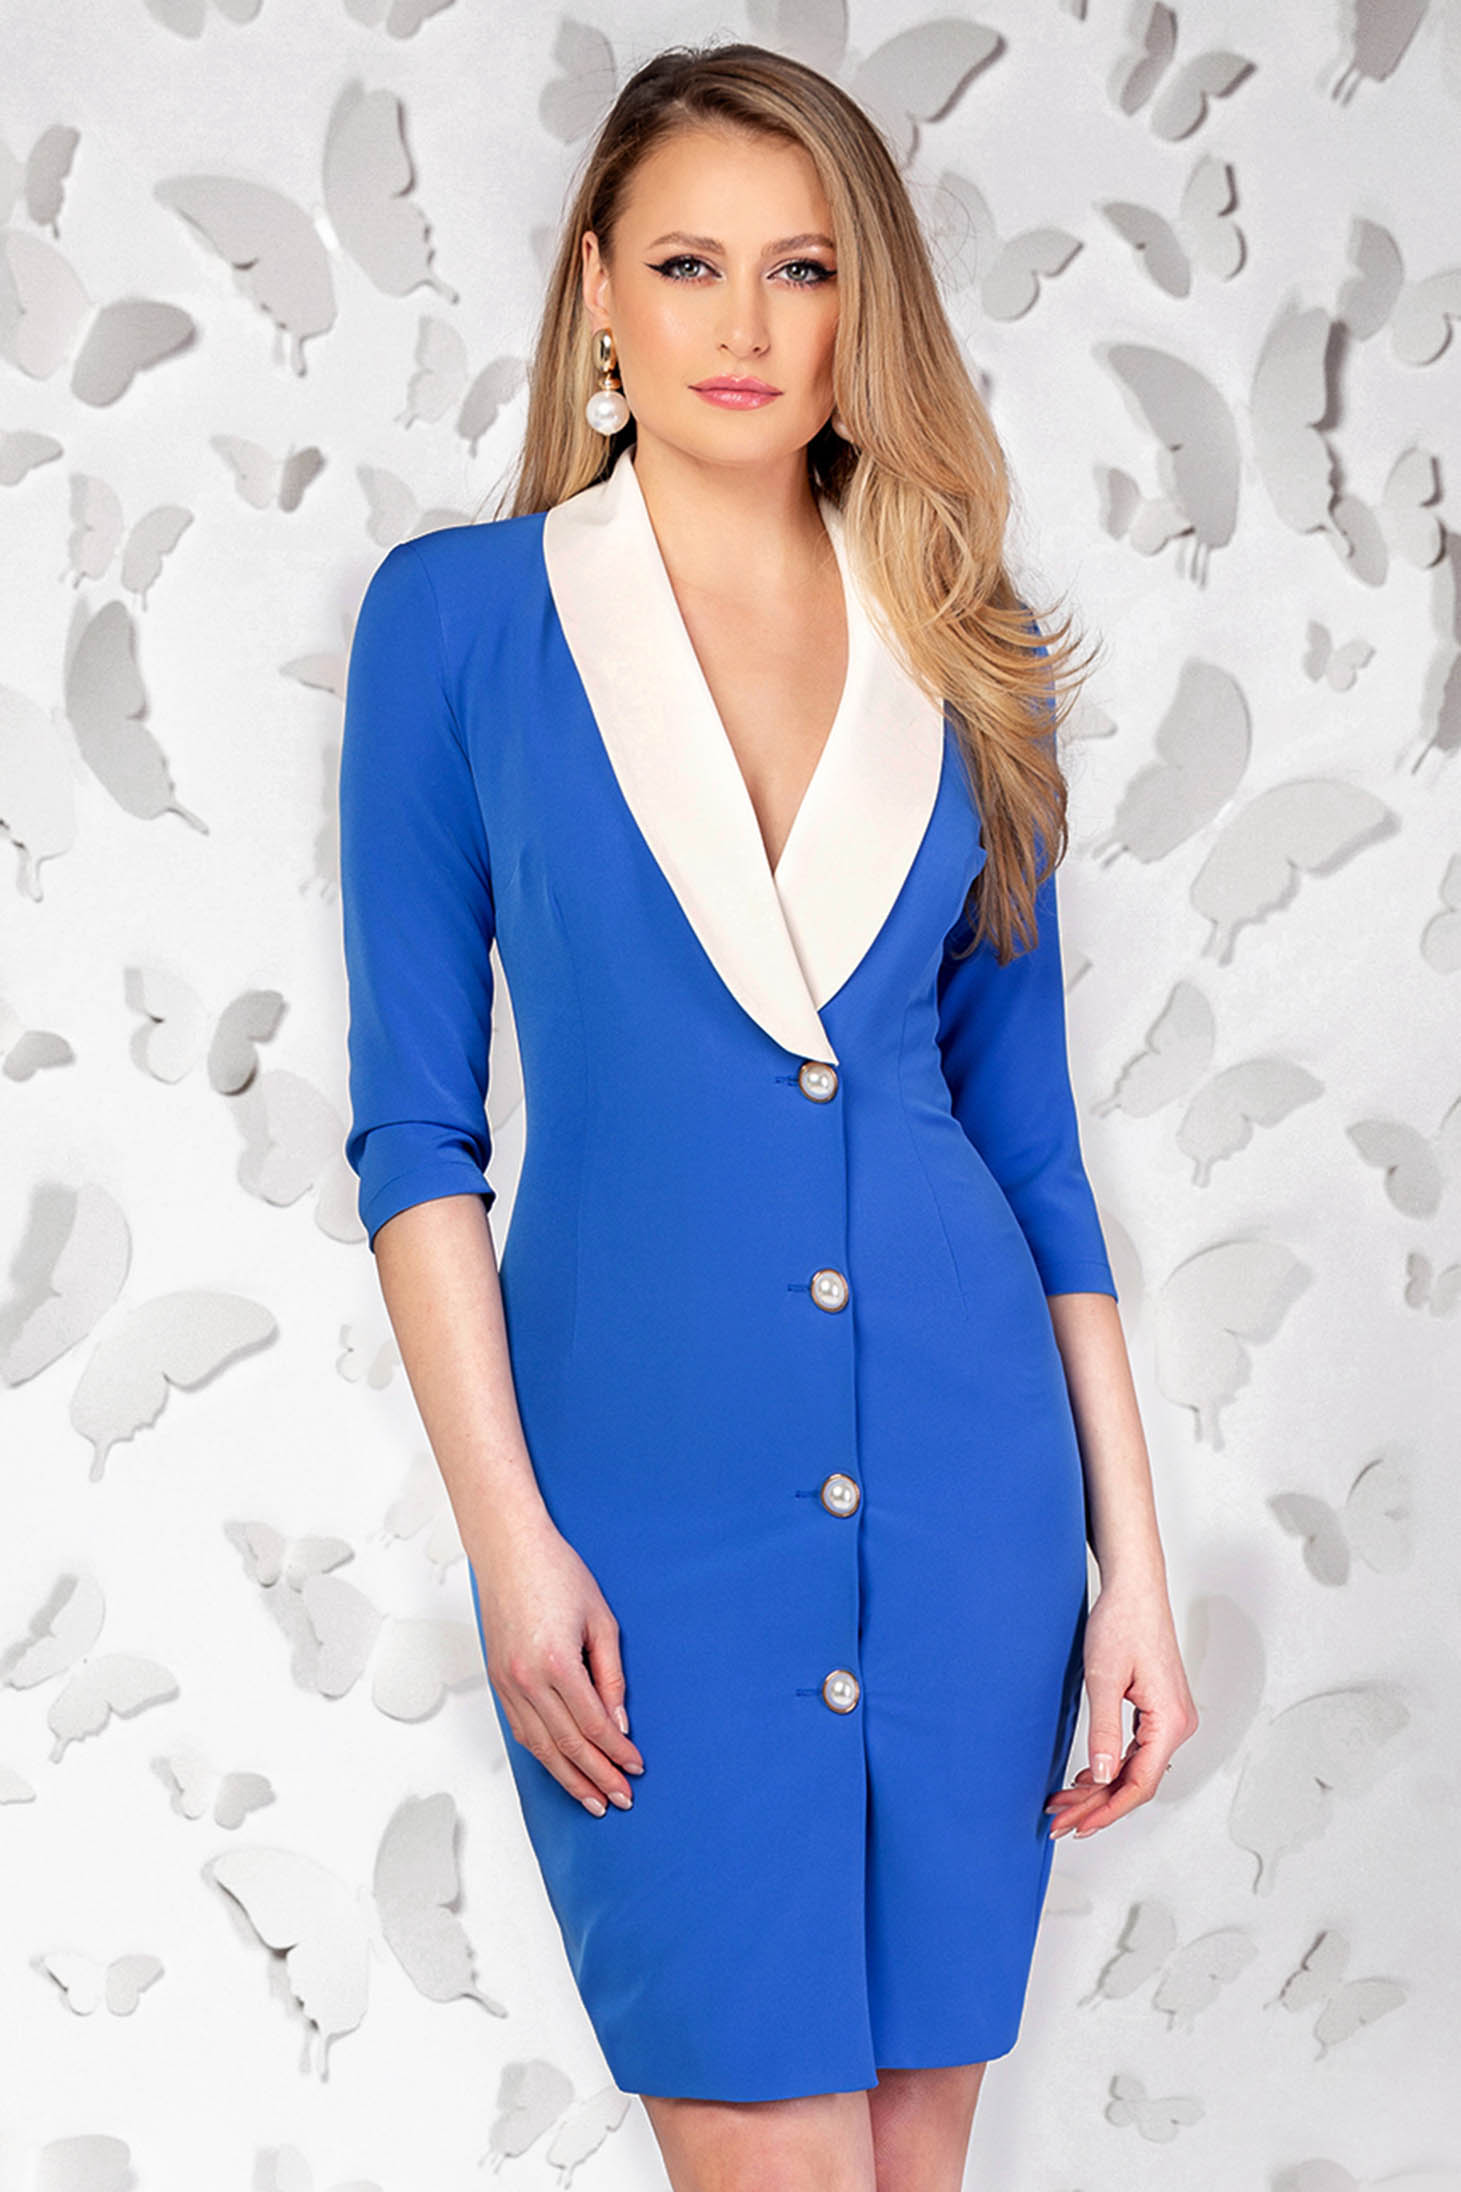 Blue dress elegant short cut pencil with v-neckline with button accessories